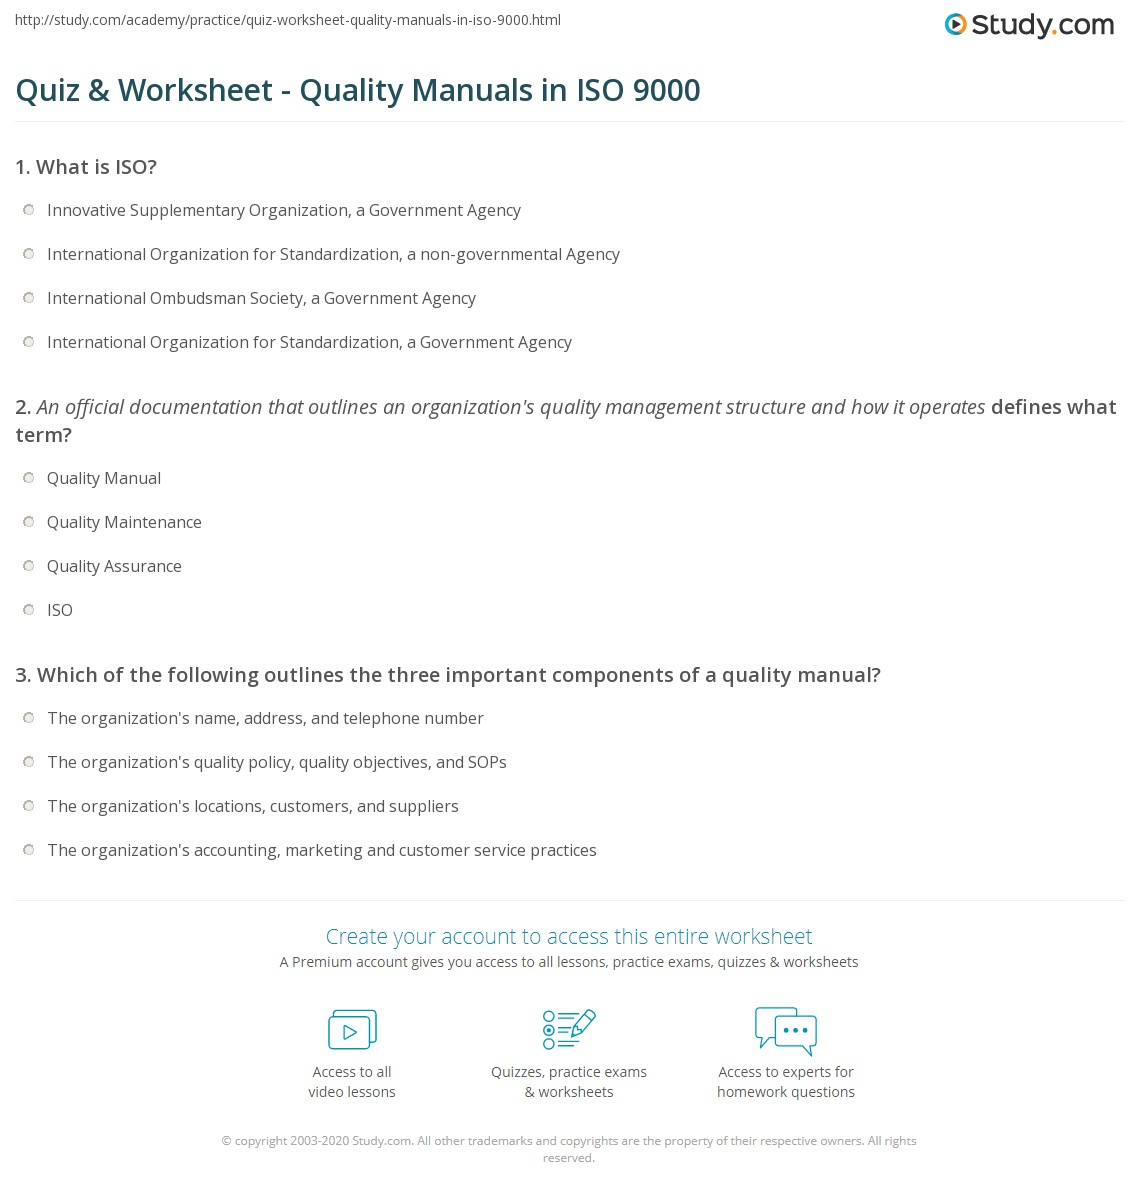 quiz & worksheet - quality manuals in iso 9000 | study